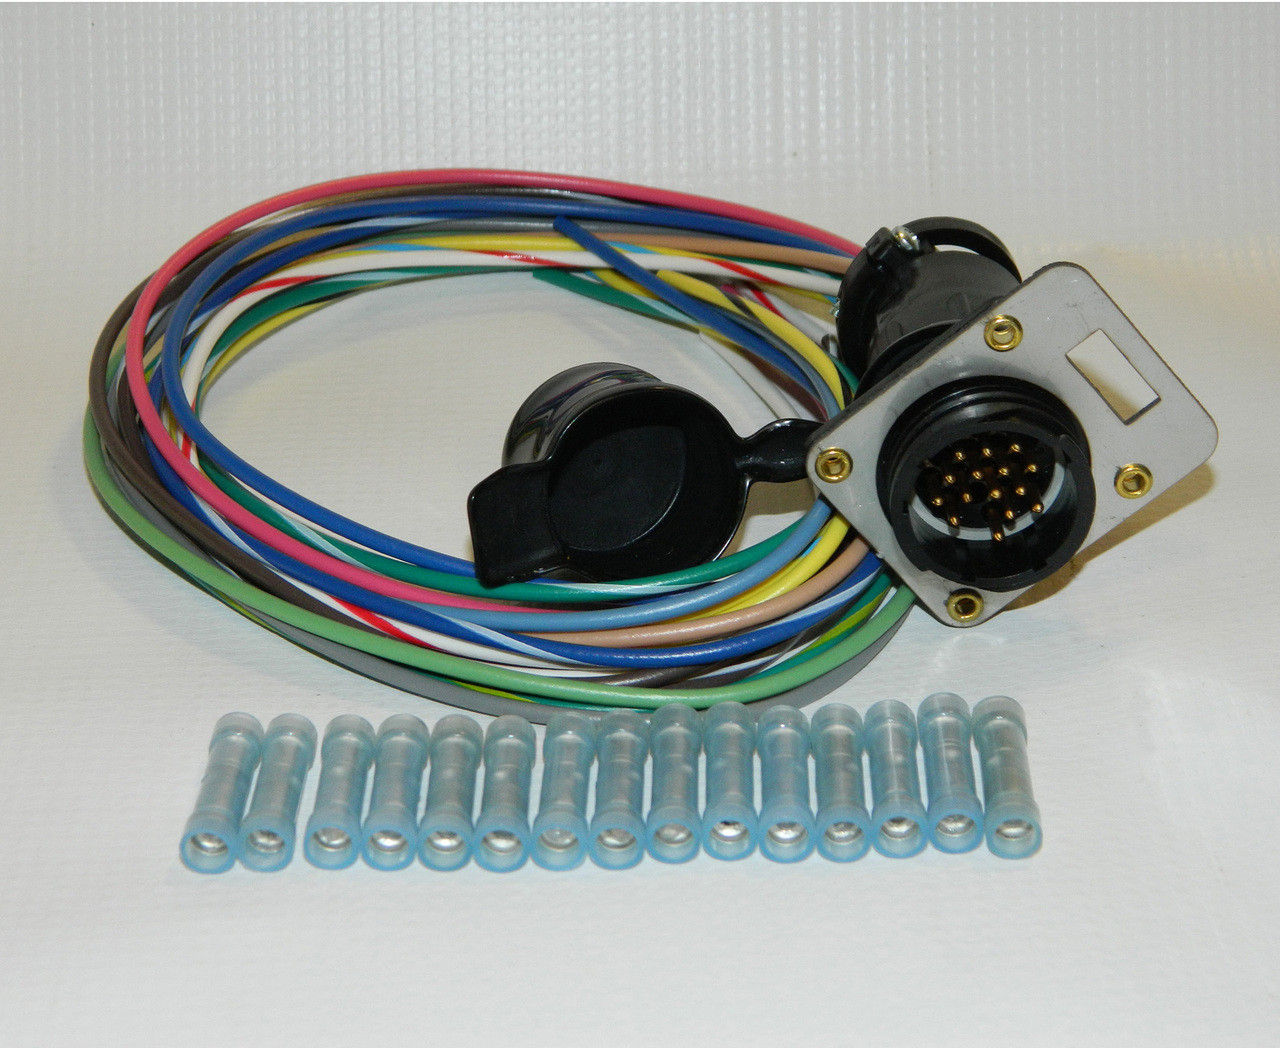 Hn38813106 Hiniker Pigtail Repair Kit For Amp Cpc Grill End Snow Plow Wiring Harness